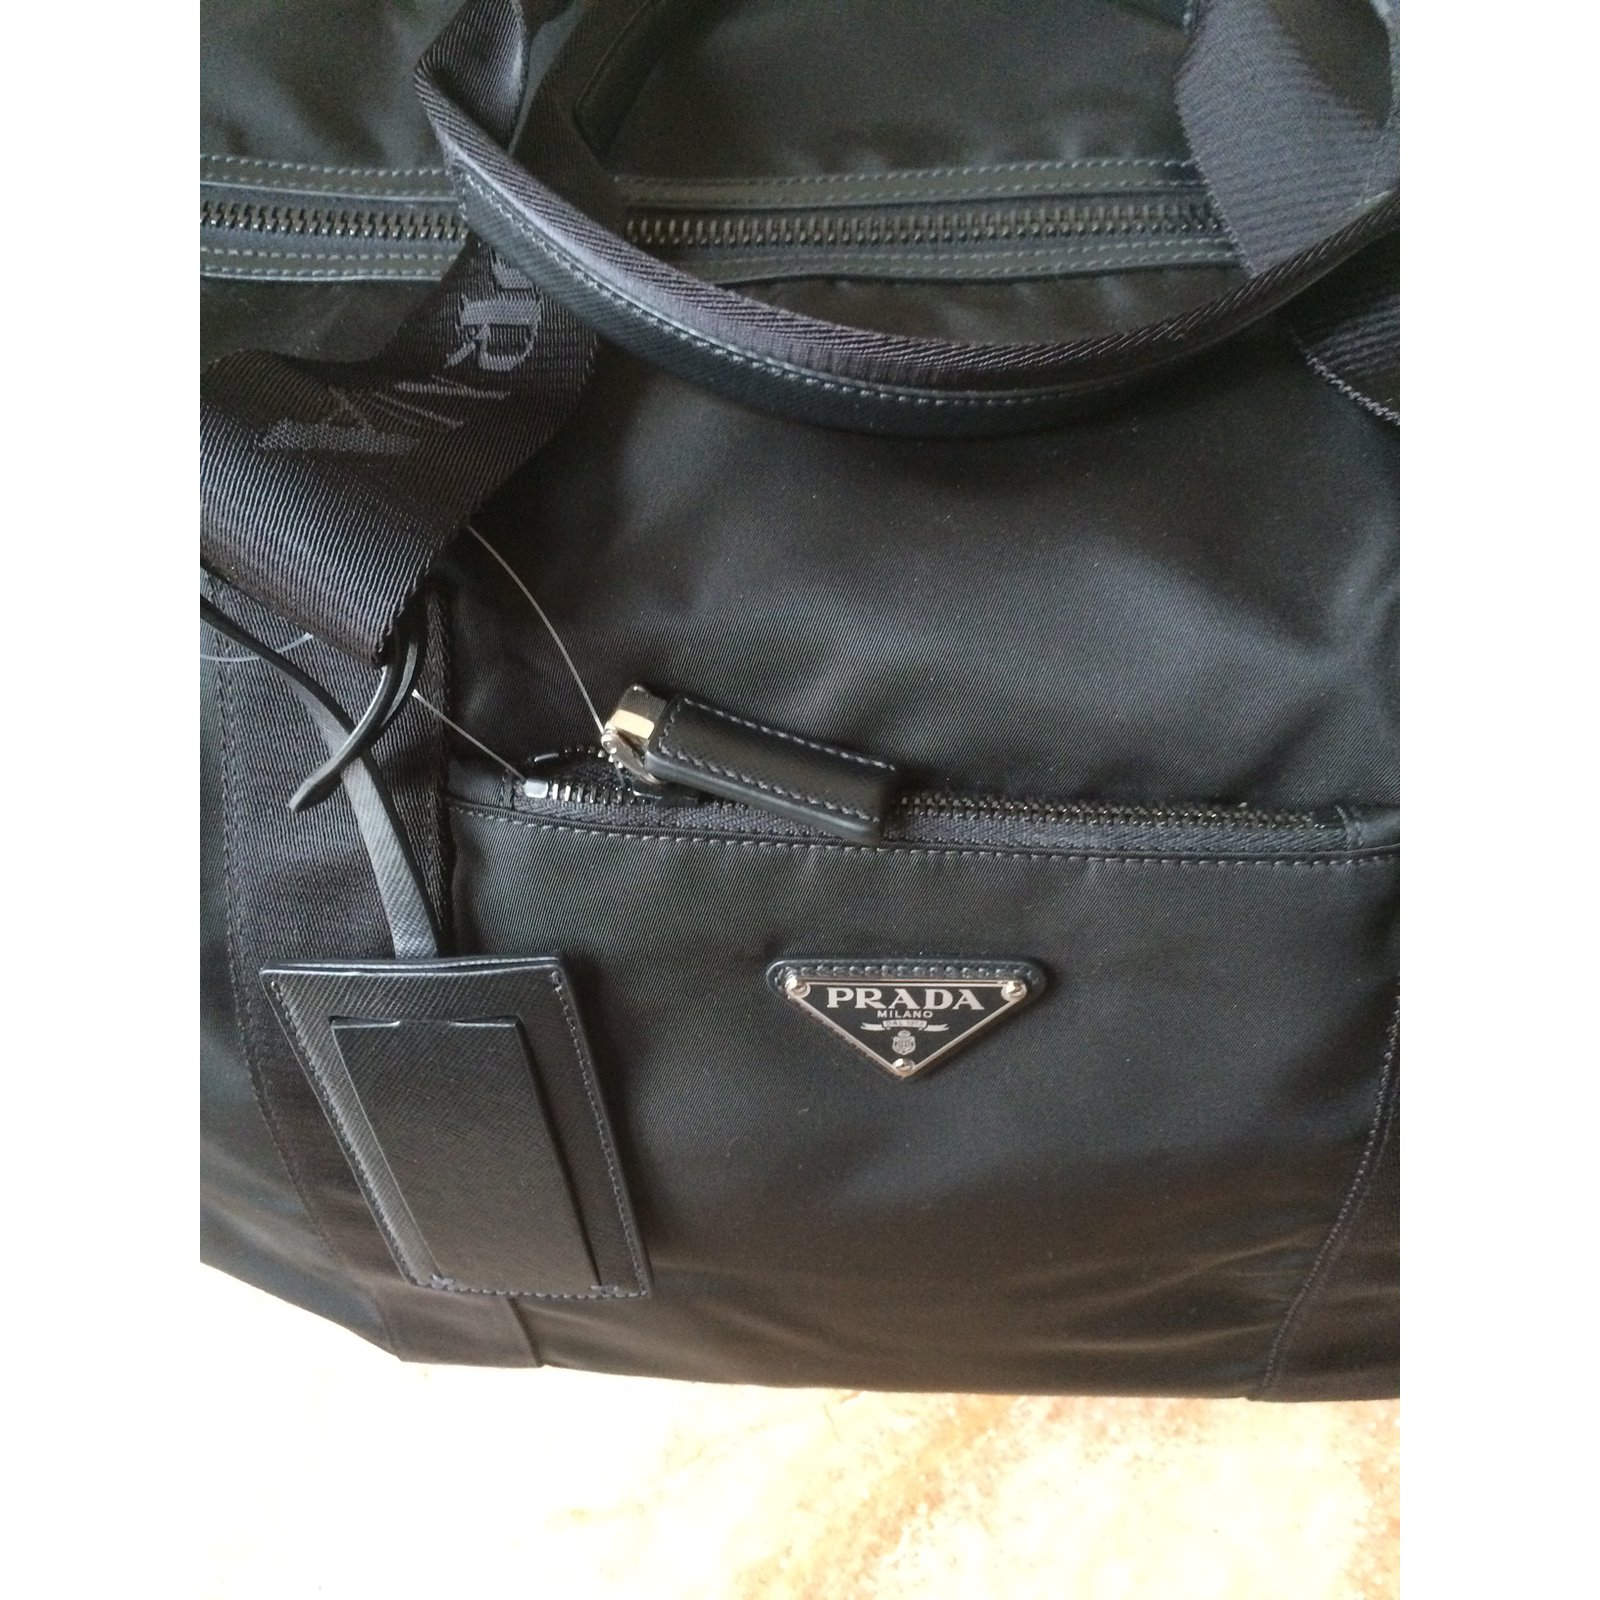 8a17485d2522 Prada Duffle bag Travel bag Nylon Black ref.17703 - Joli Closet